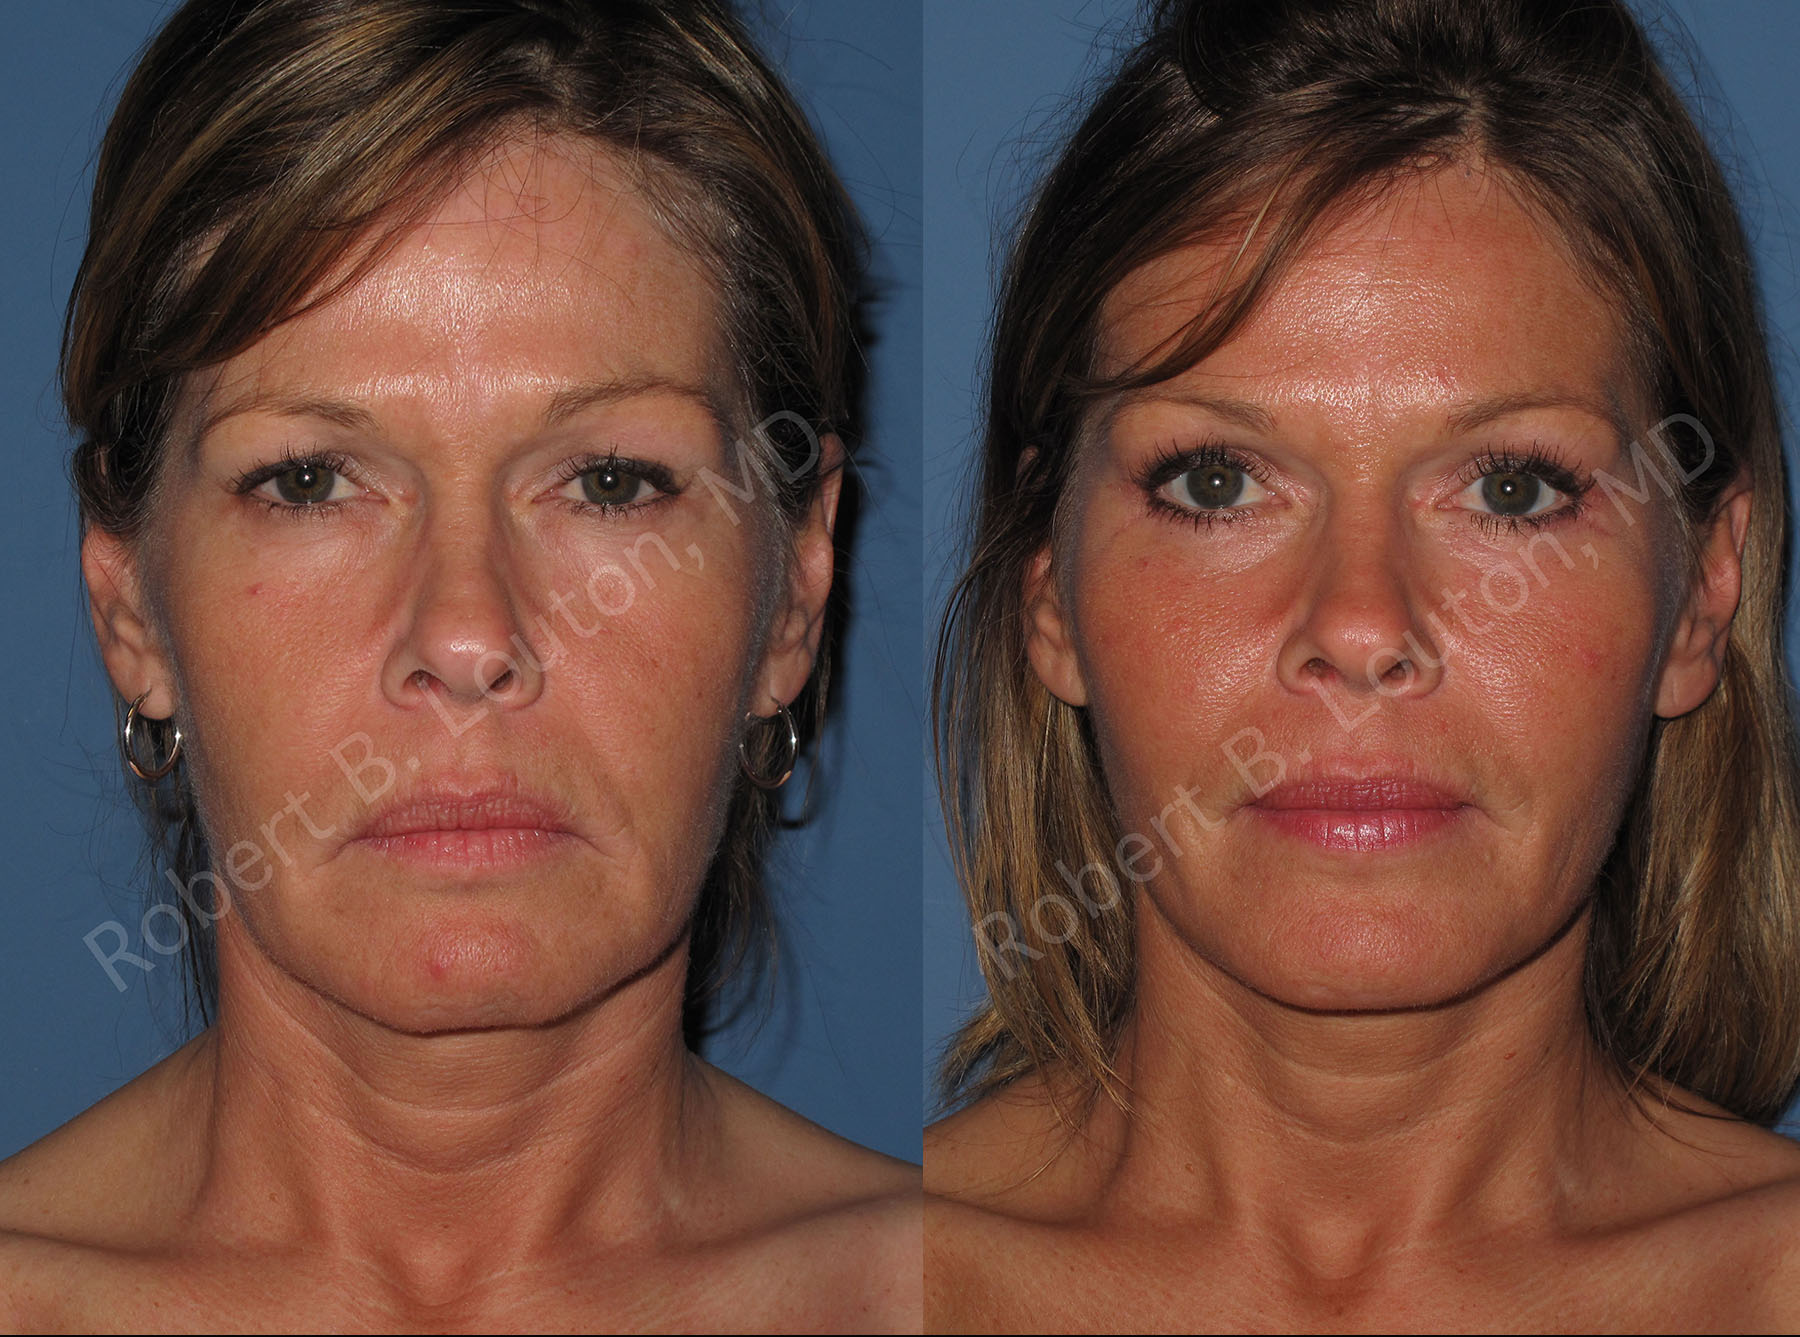 endoscopic facelift before and after - Dr. Robert Louton, Blair Plastic Surgery